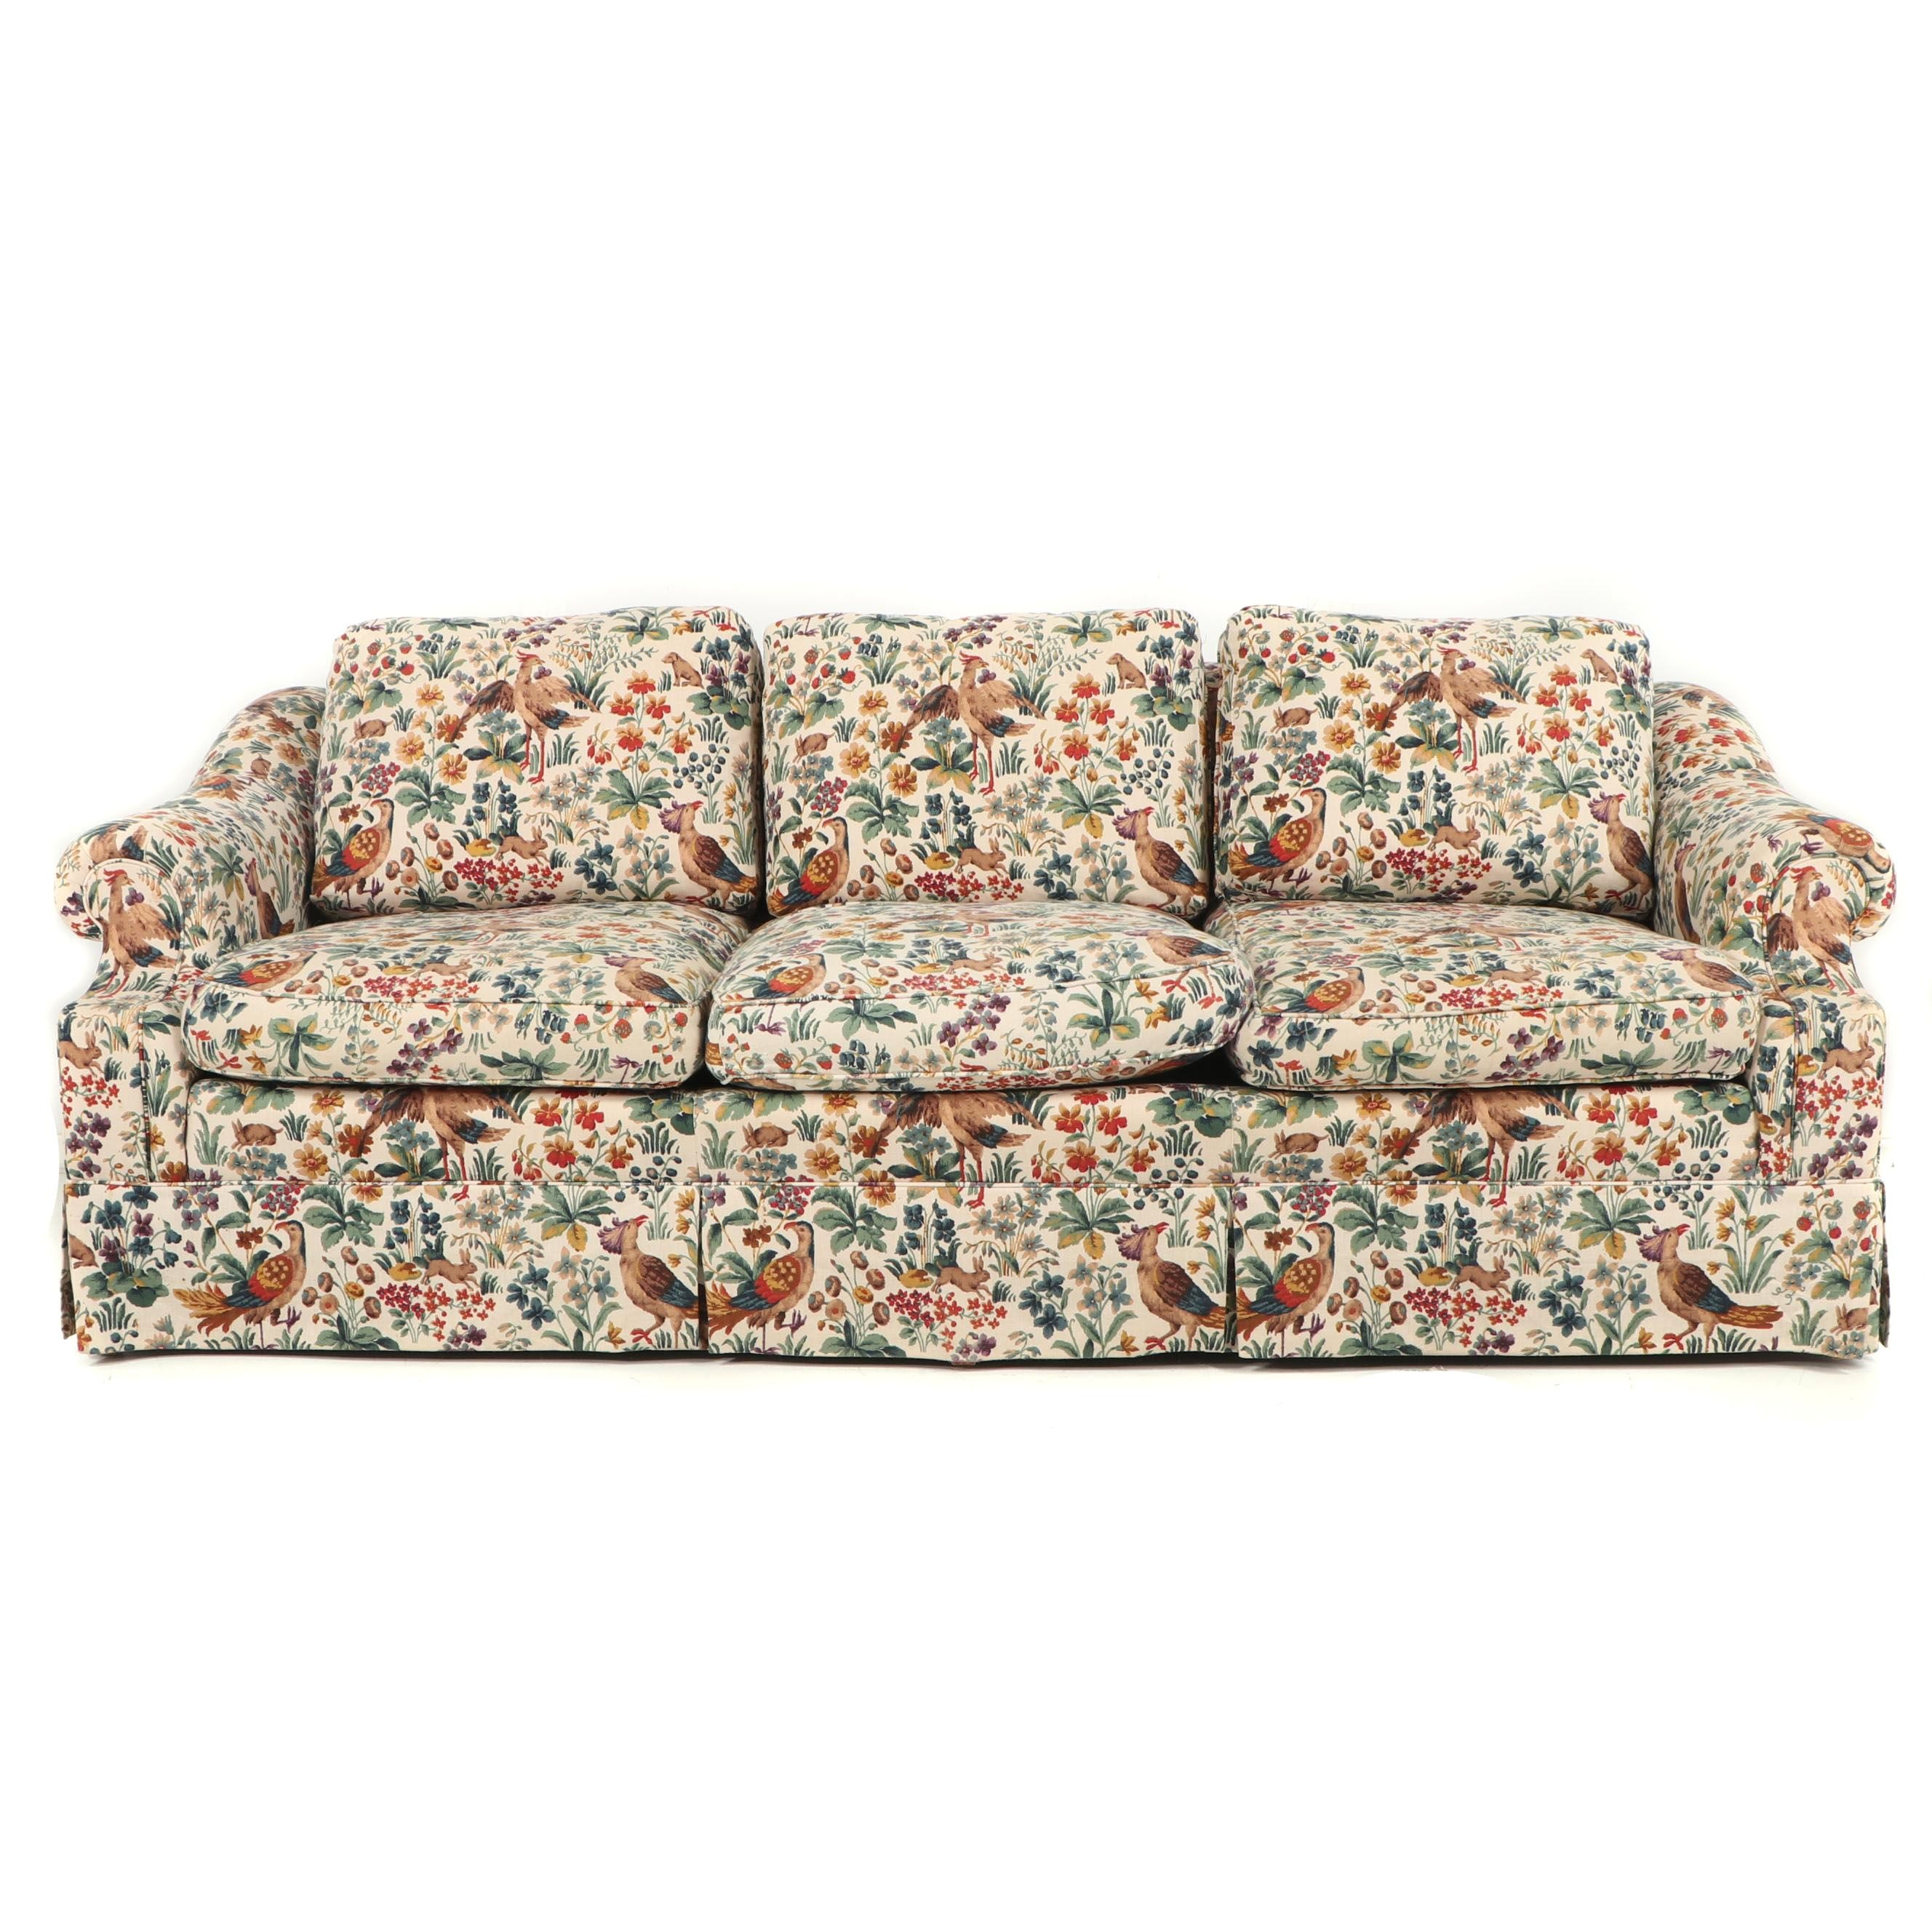 Schoonbeck Henredon Bird and Floral Sofa